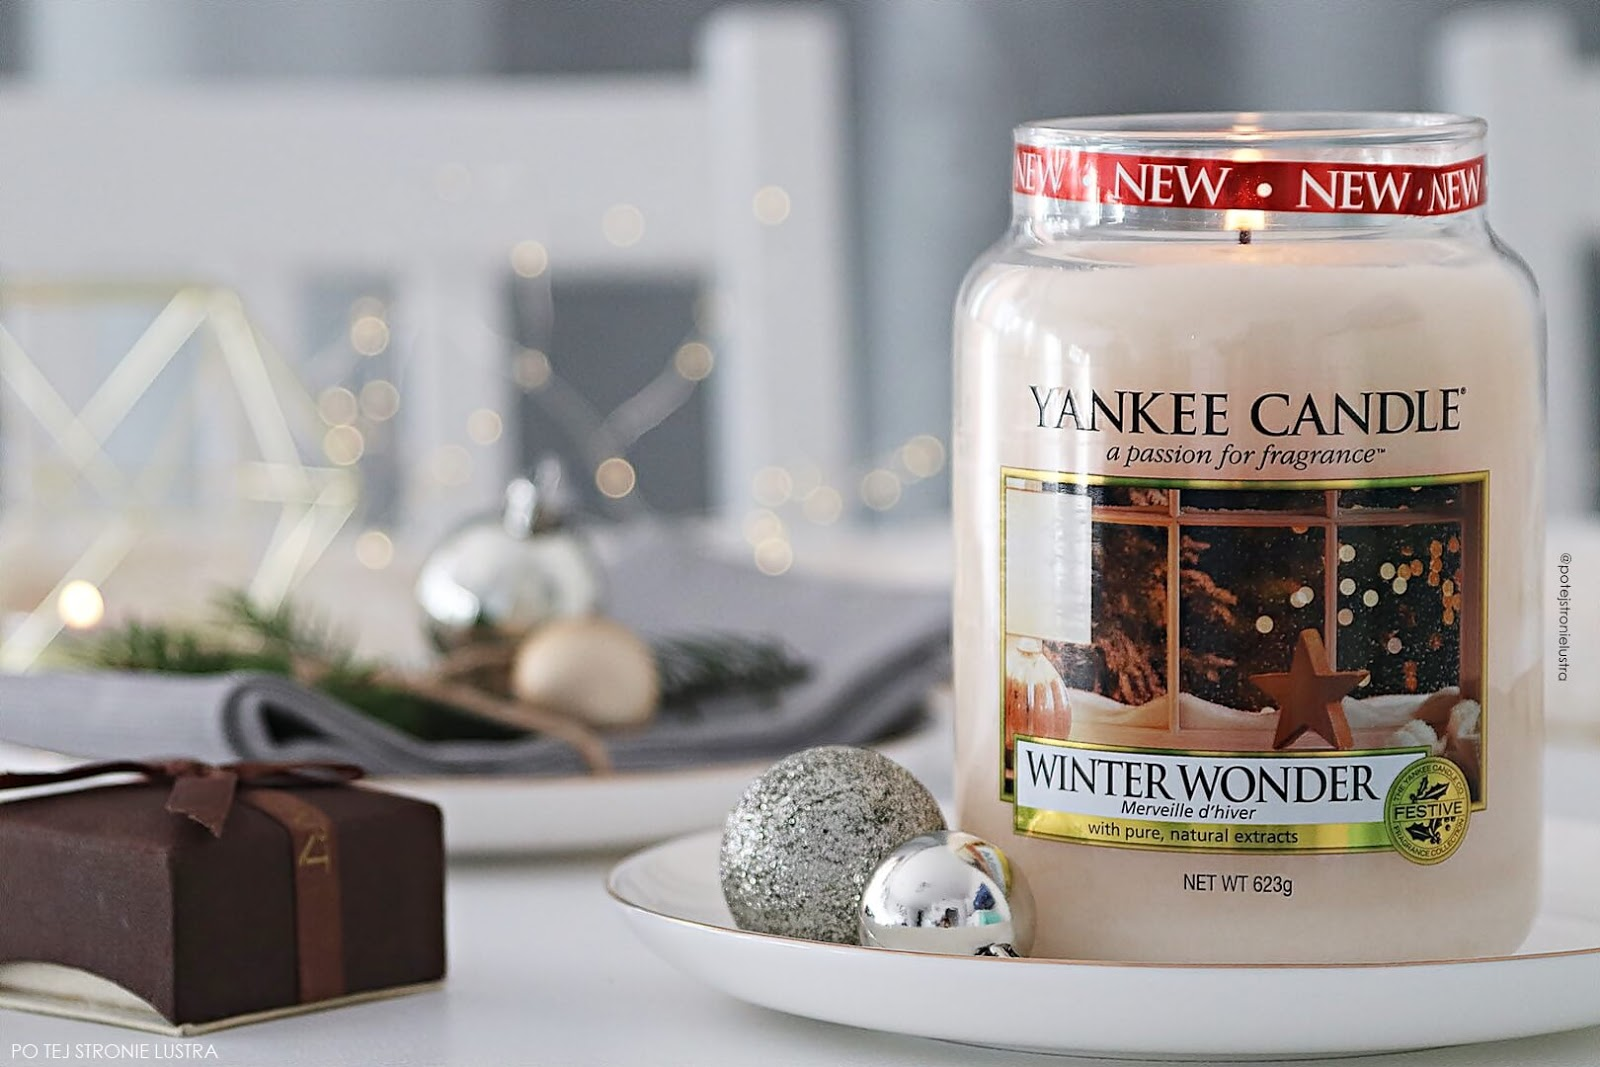 Yankee Candle Winter Wonder | Q4 2018